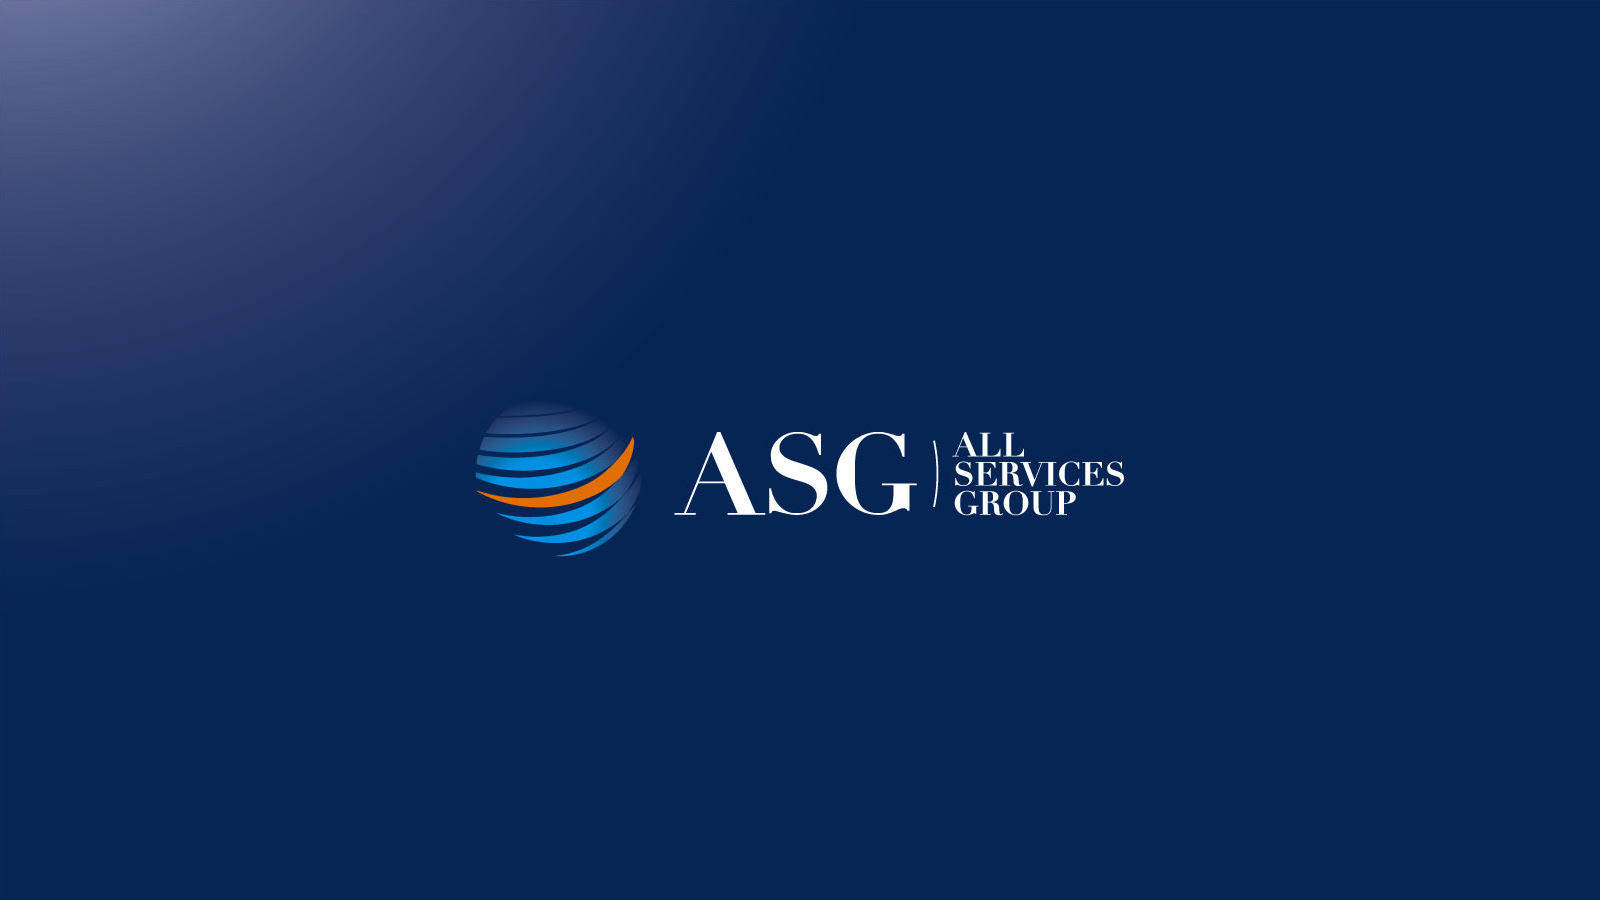 All Services Group - ASG